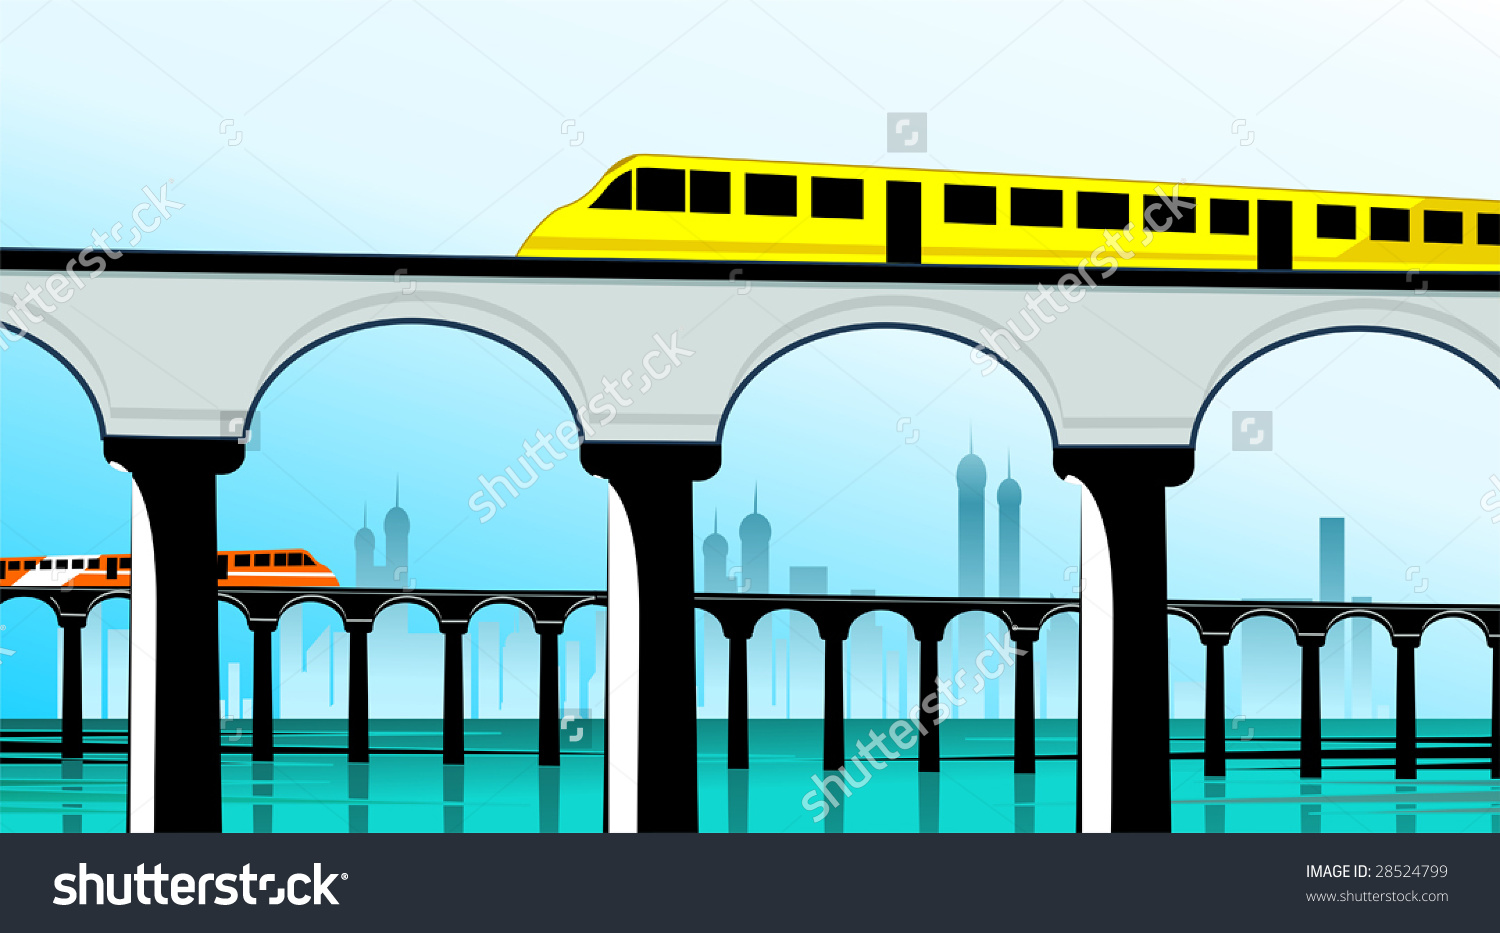 Illustration Train Moves Over Bridge Stock Vector 28524799.